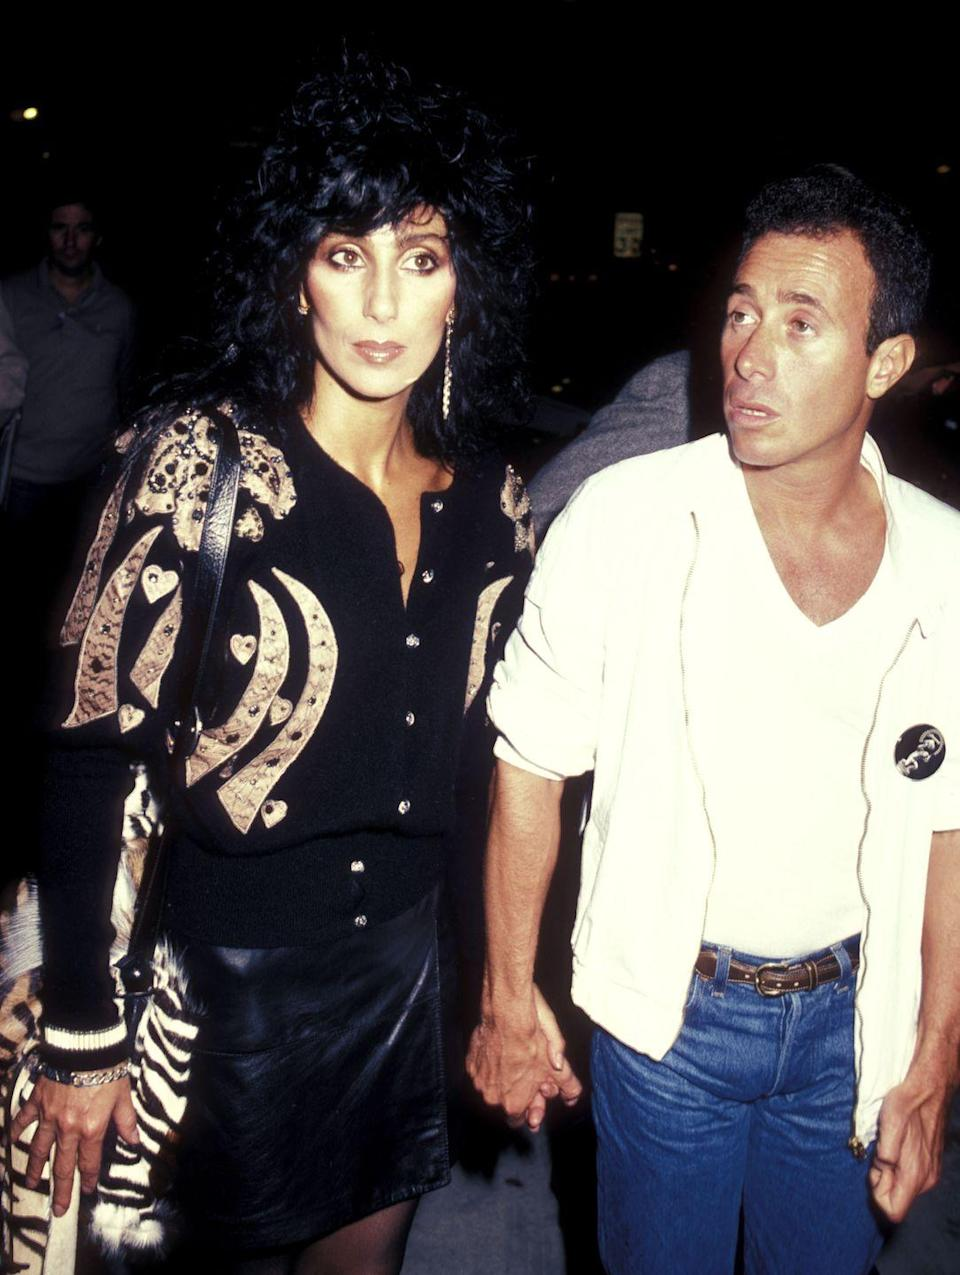 <p>Cher mixed '80s glam with her own signature touches when she attended an August party at the Hard Rock Cafe alongside producer David Geffen.<br></p>